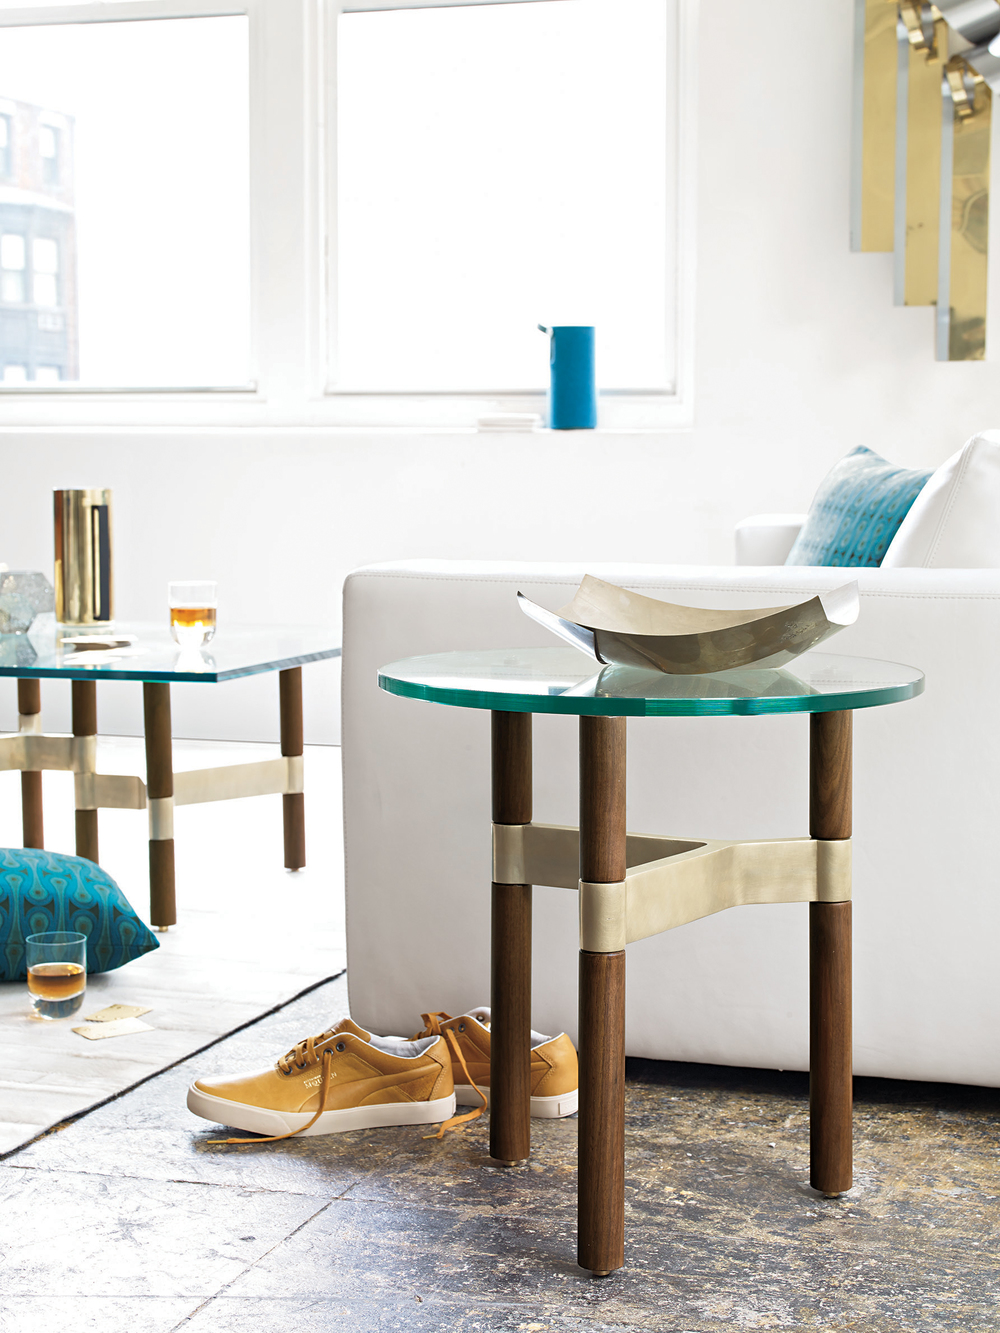 DWR_Chris_Hardy_Design_ Helix_Table